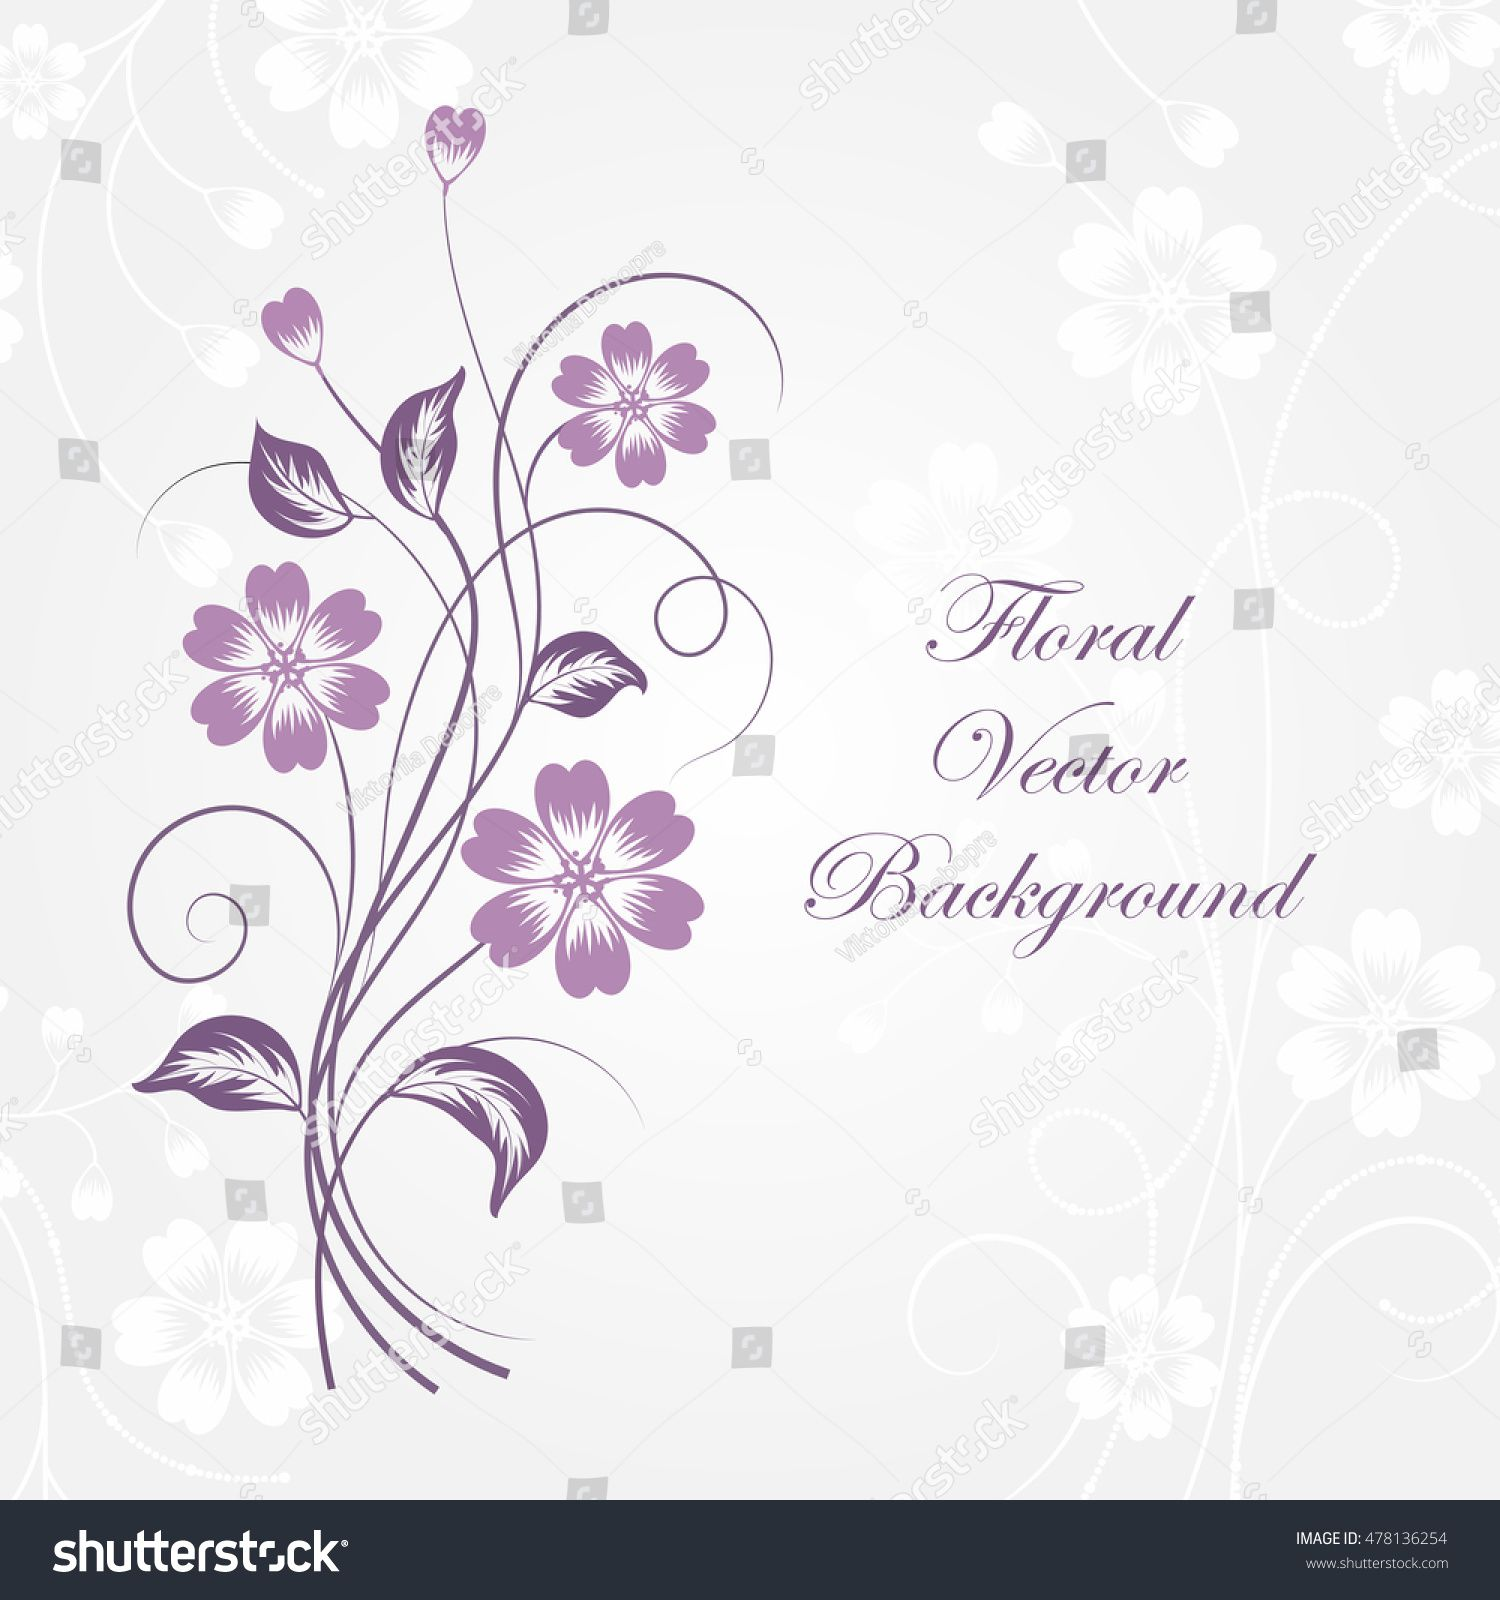 Simple Floral Background In Violet Colors With Place For Your Text